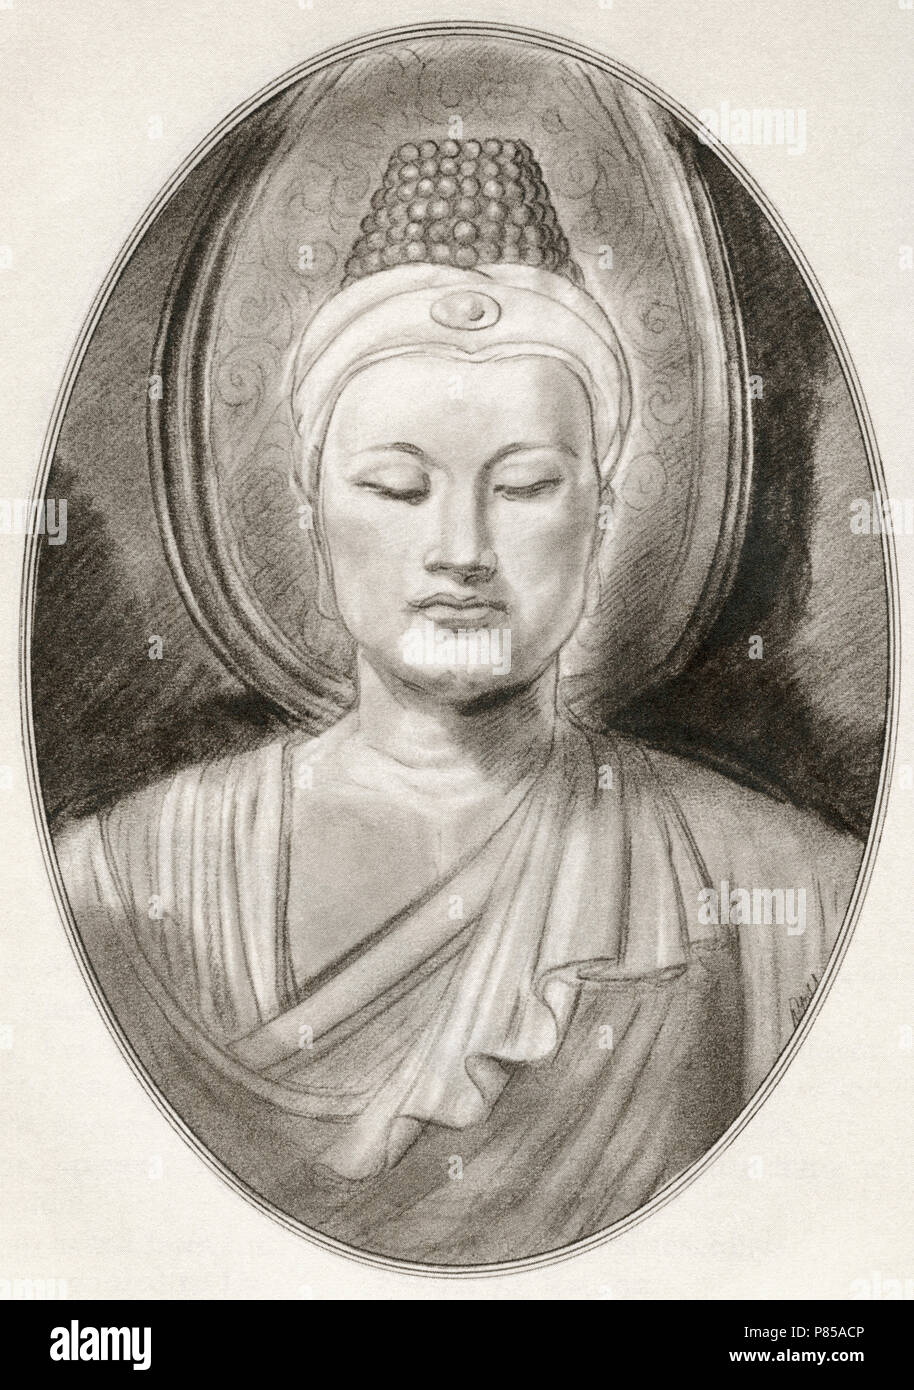 Gautama Buddha, c. 563/480 – c. 483/400 BC, aka Siddhārtha Gautama, Shakyamuni Buddha or the Buddha.  Ascetic (śramaṇa) and sage.   Illustration by Gordon Ross, American artist and illustrator (1873-1946), from Living Biographies of Religious Leaders. - Stock Image